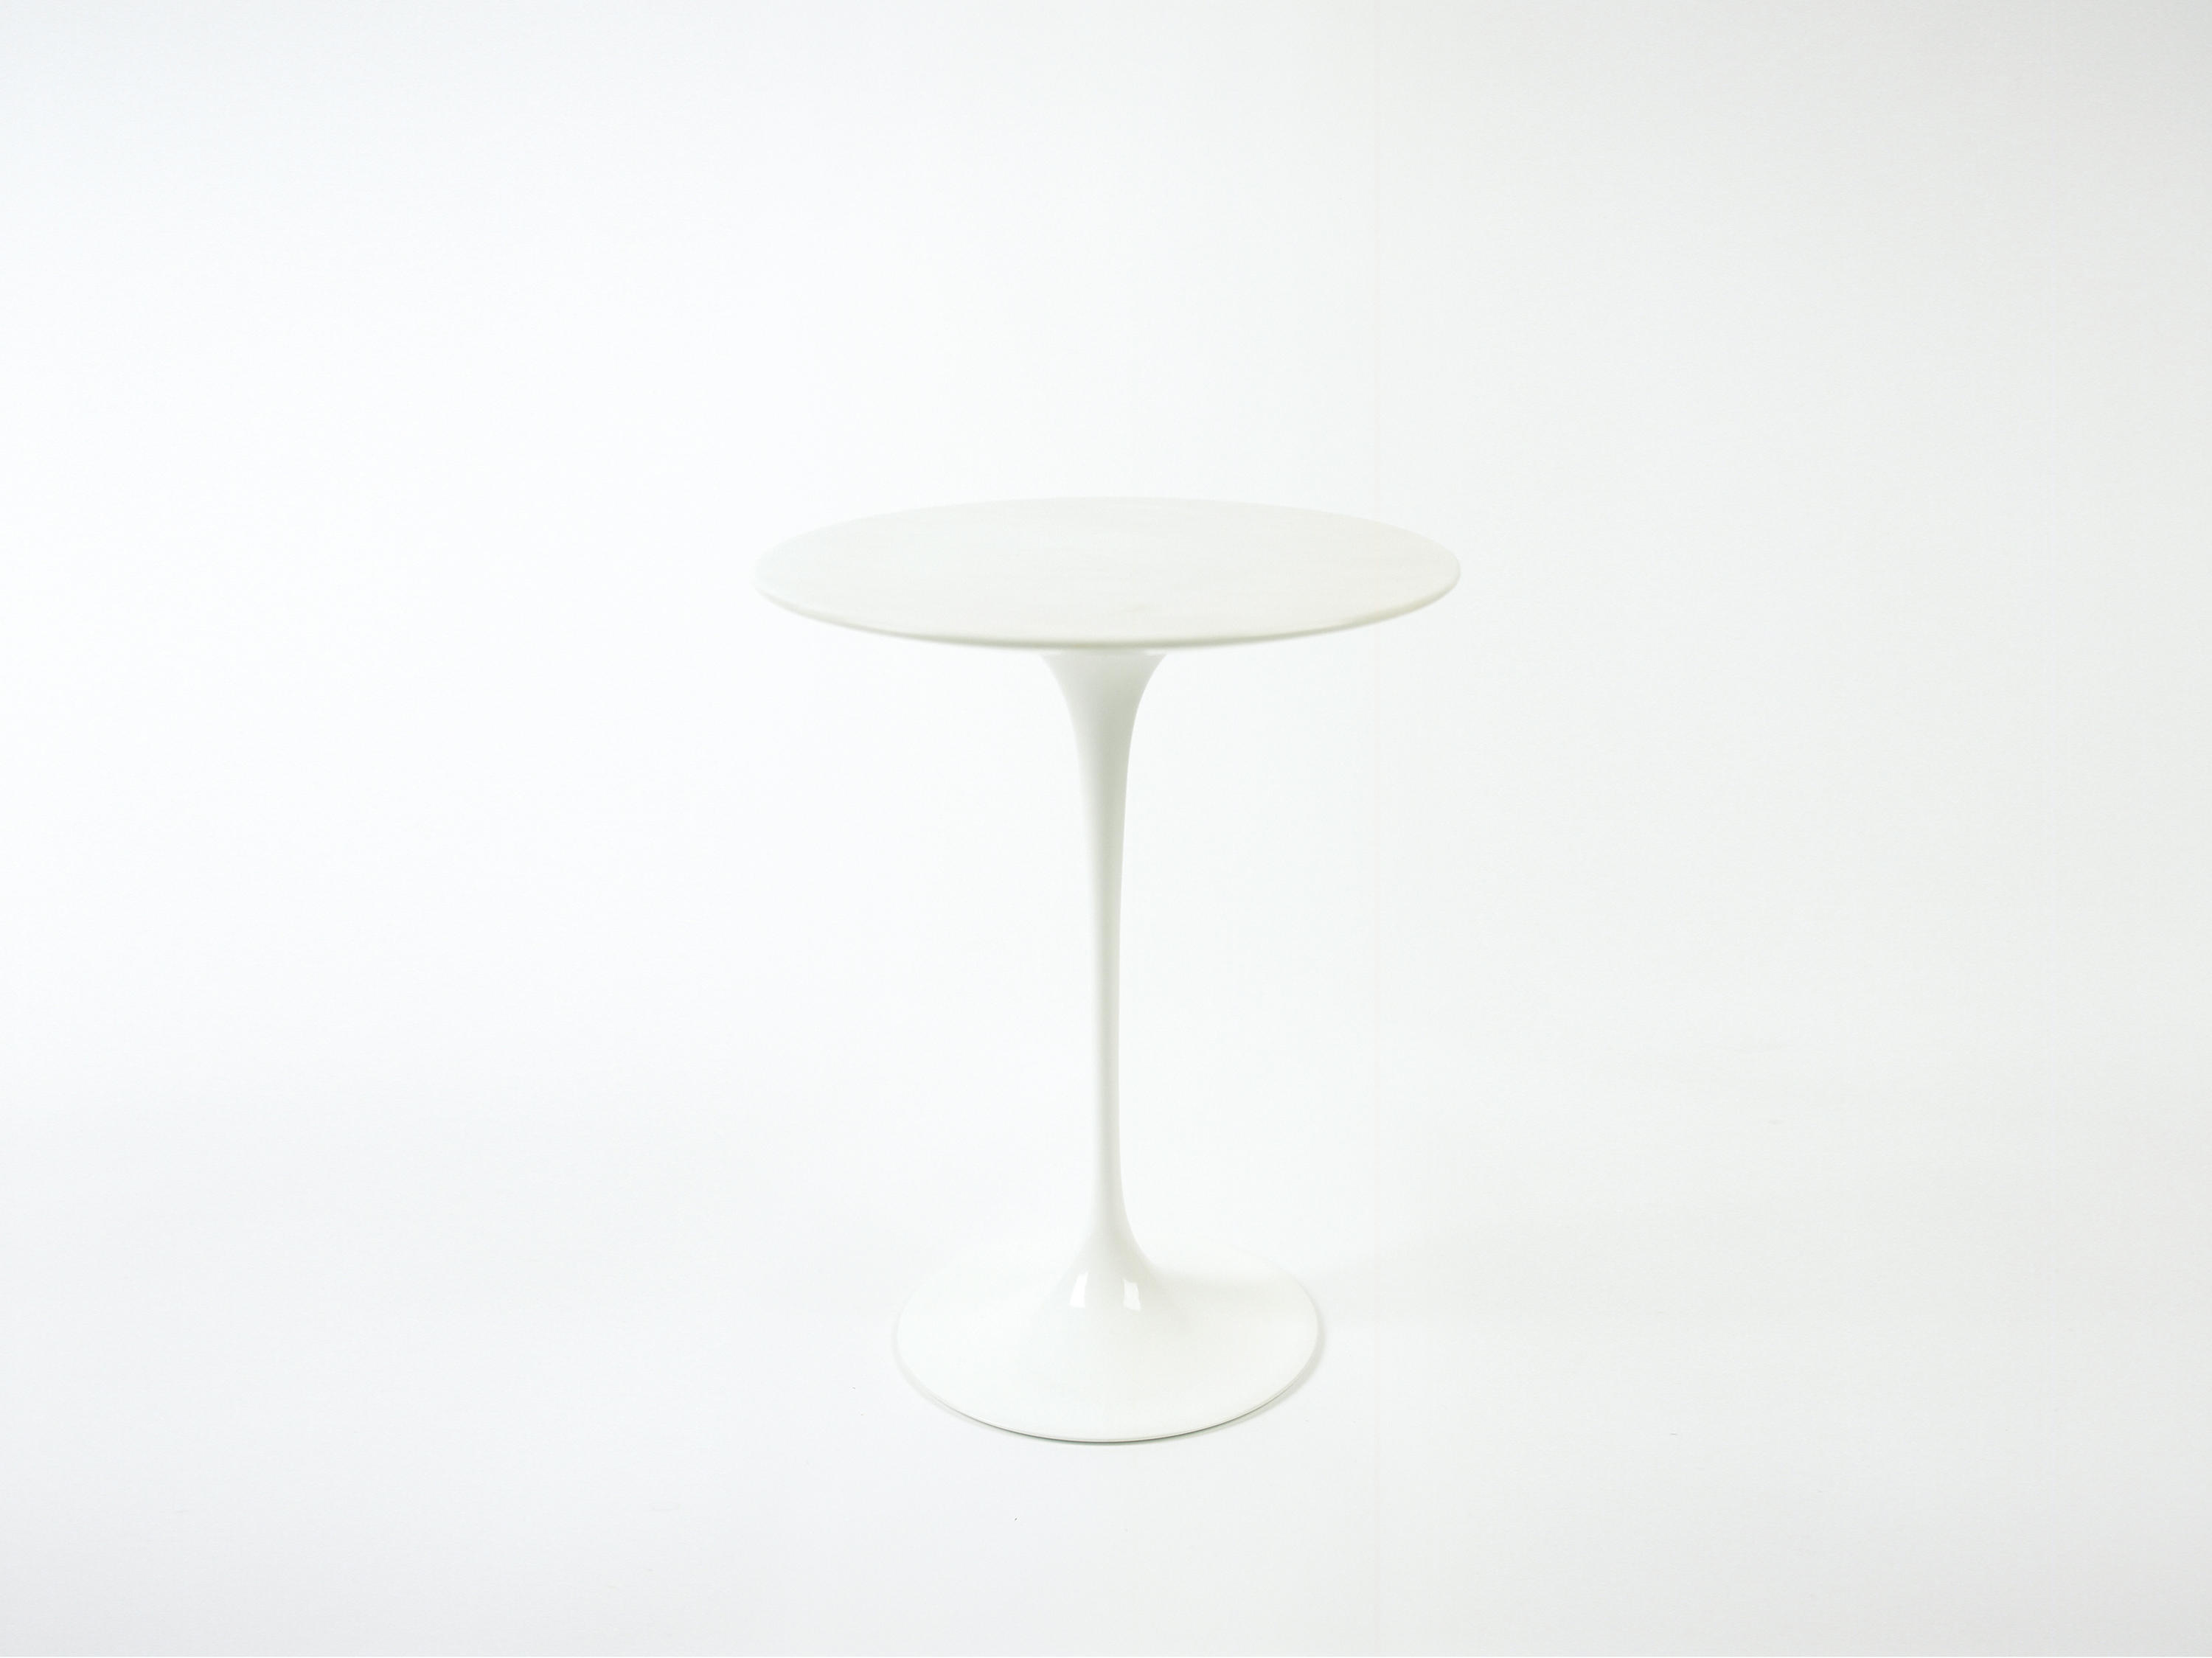 saarinen tulip low table coffee tables from knoll international architonic. Black Bedroom Furniture Sets. Home Design Ideas